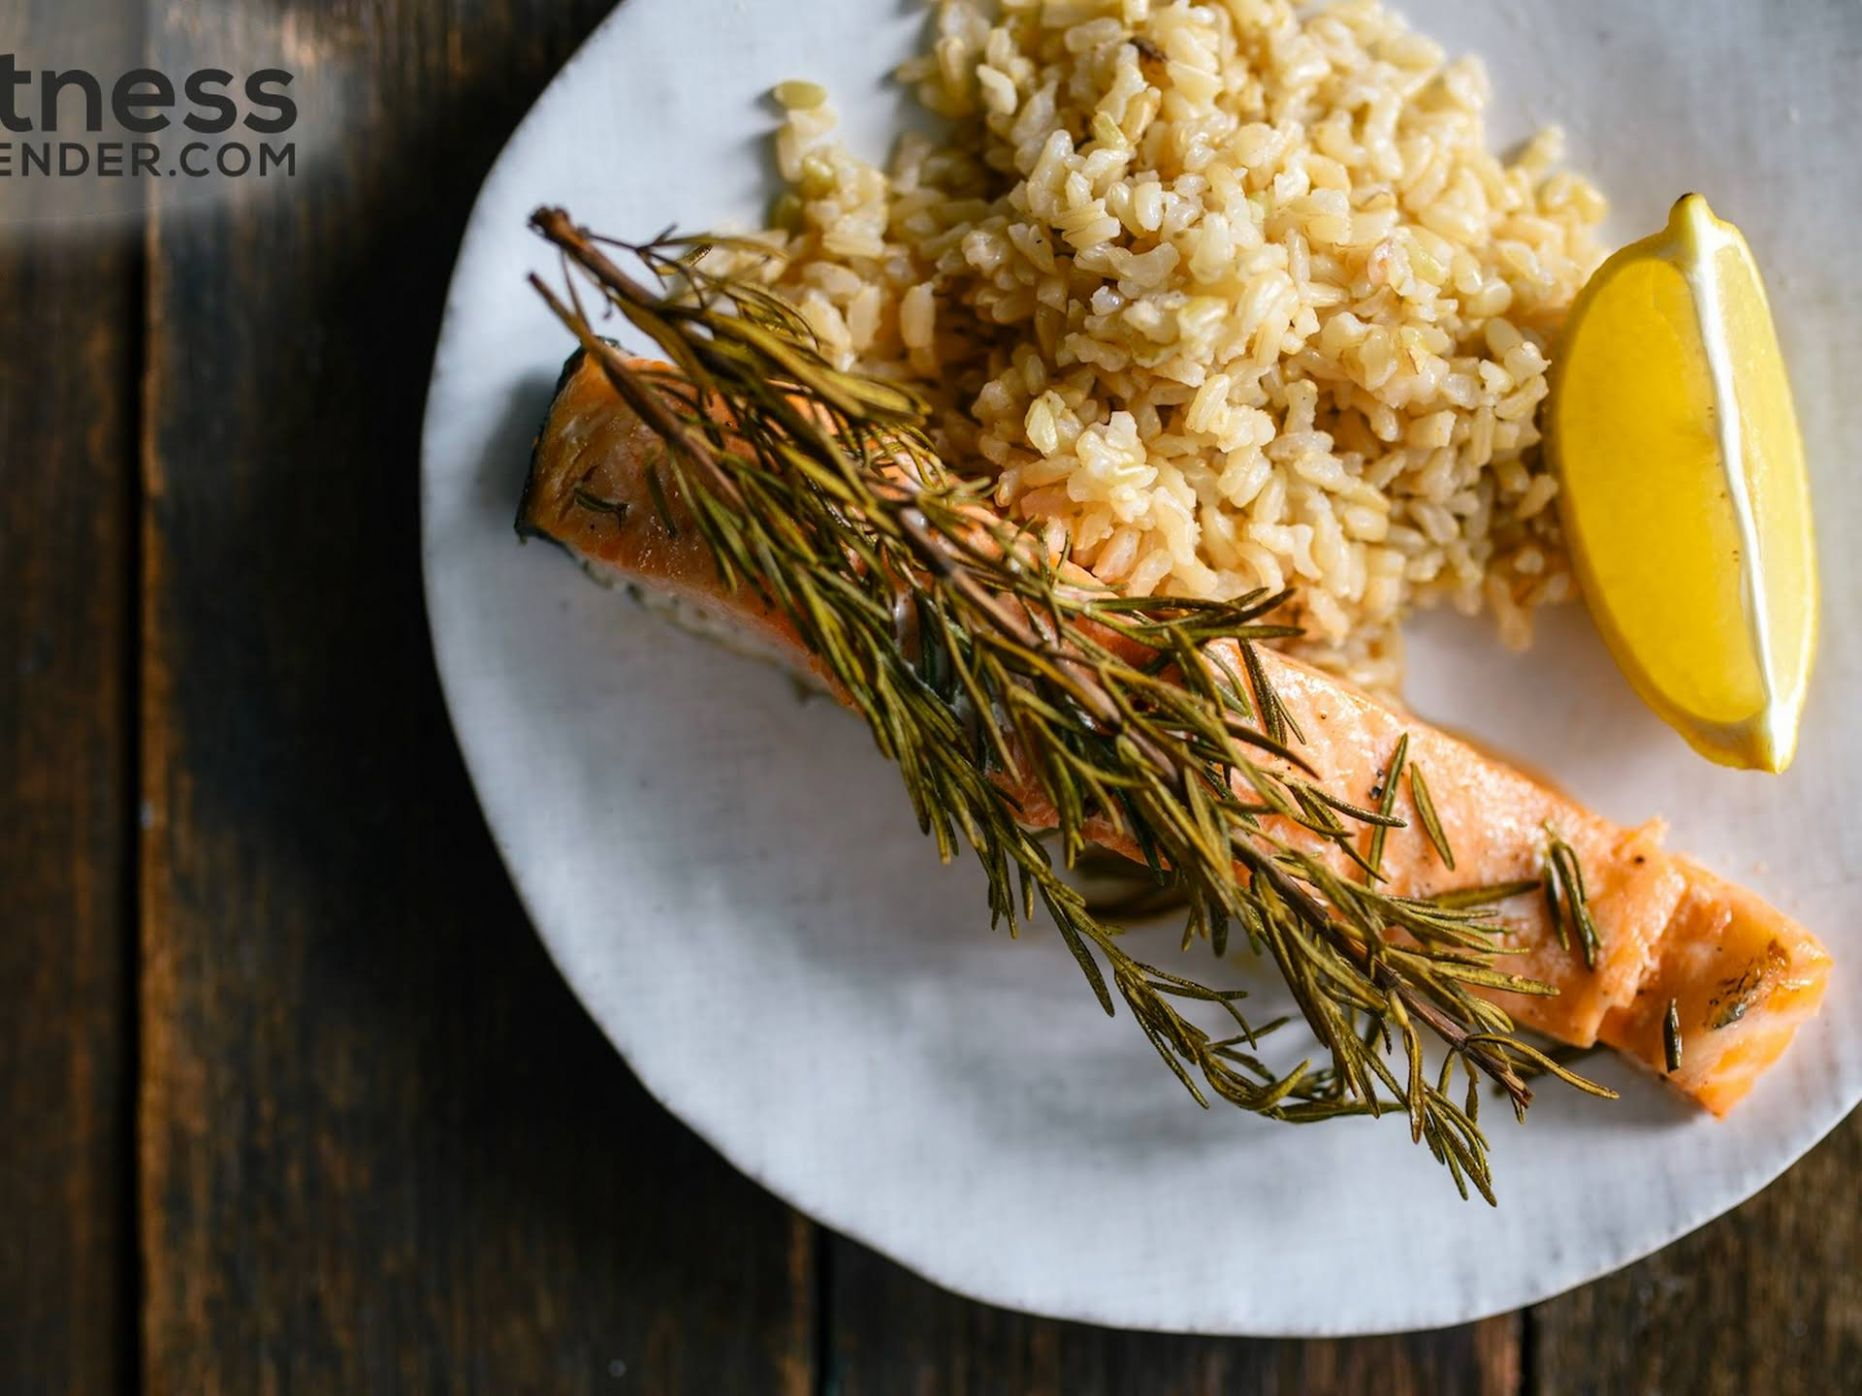 Rosemary-Roasted Salmon - Quick and Healthy Dinner Ideas - Dinner Recipes Yummly